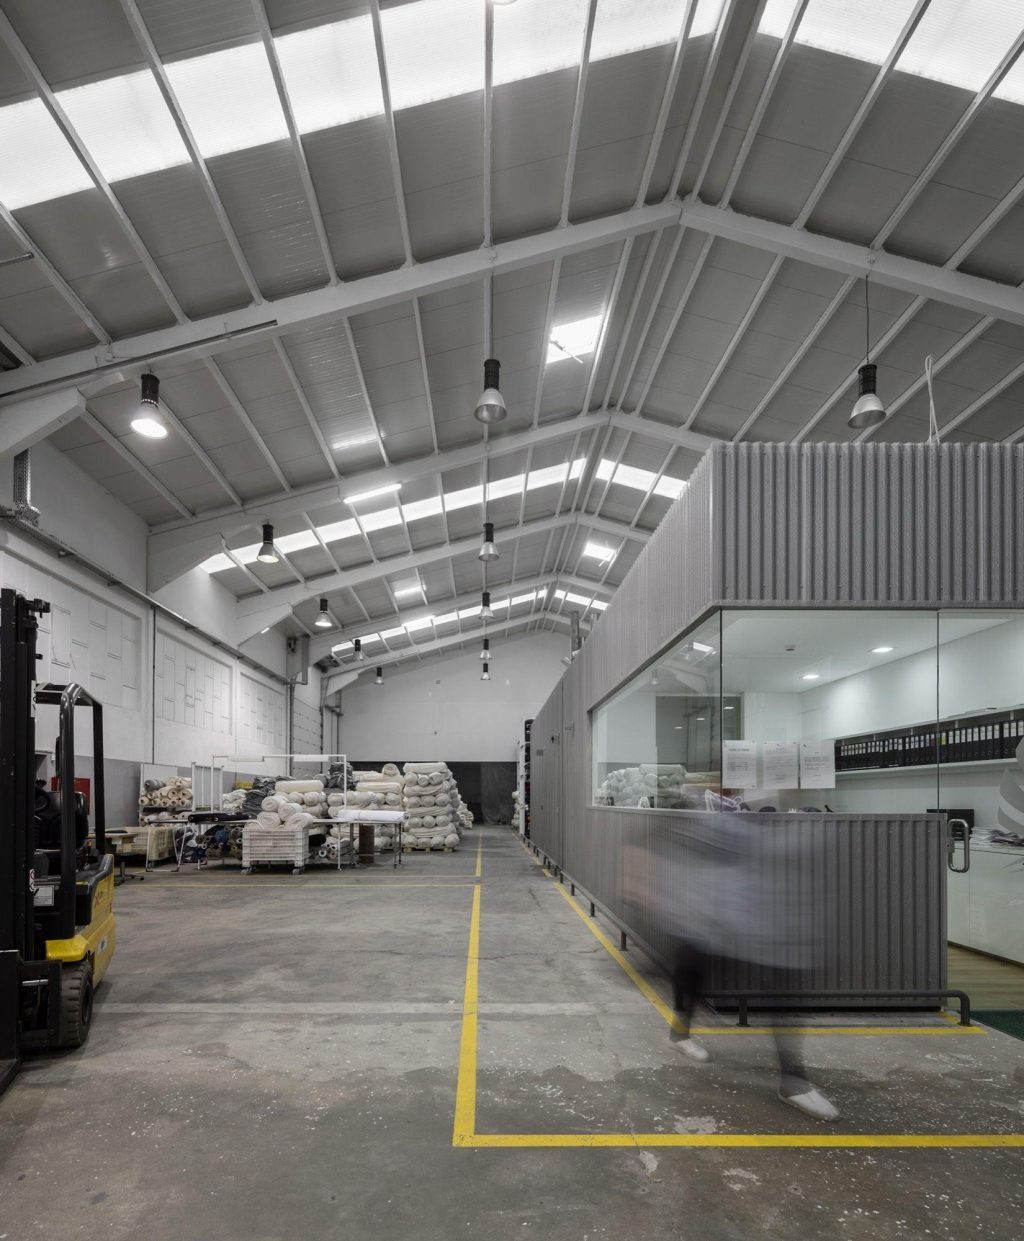 Top 7 Reasons to Invest in Industrial Roof Cleaning